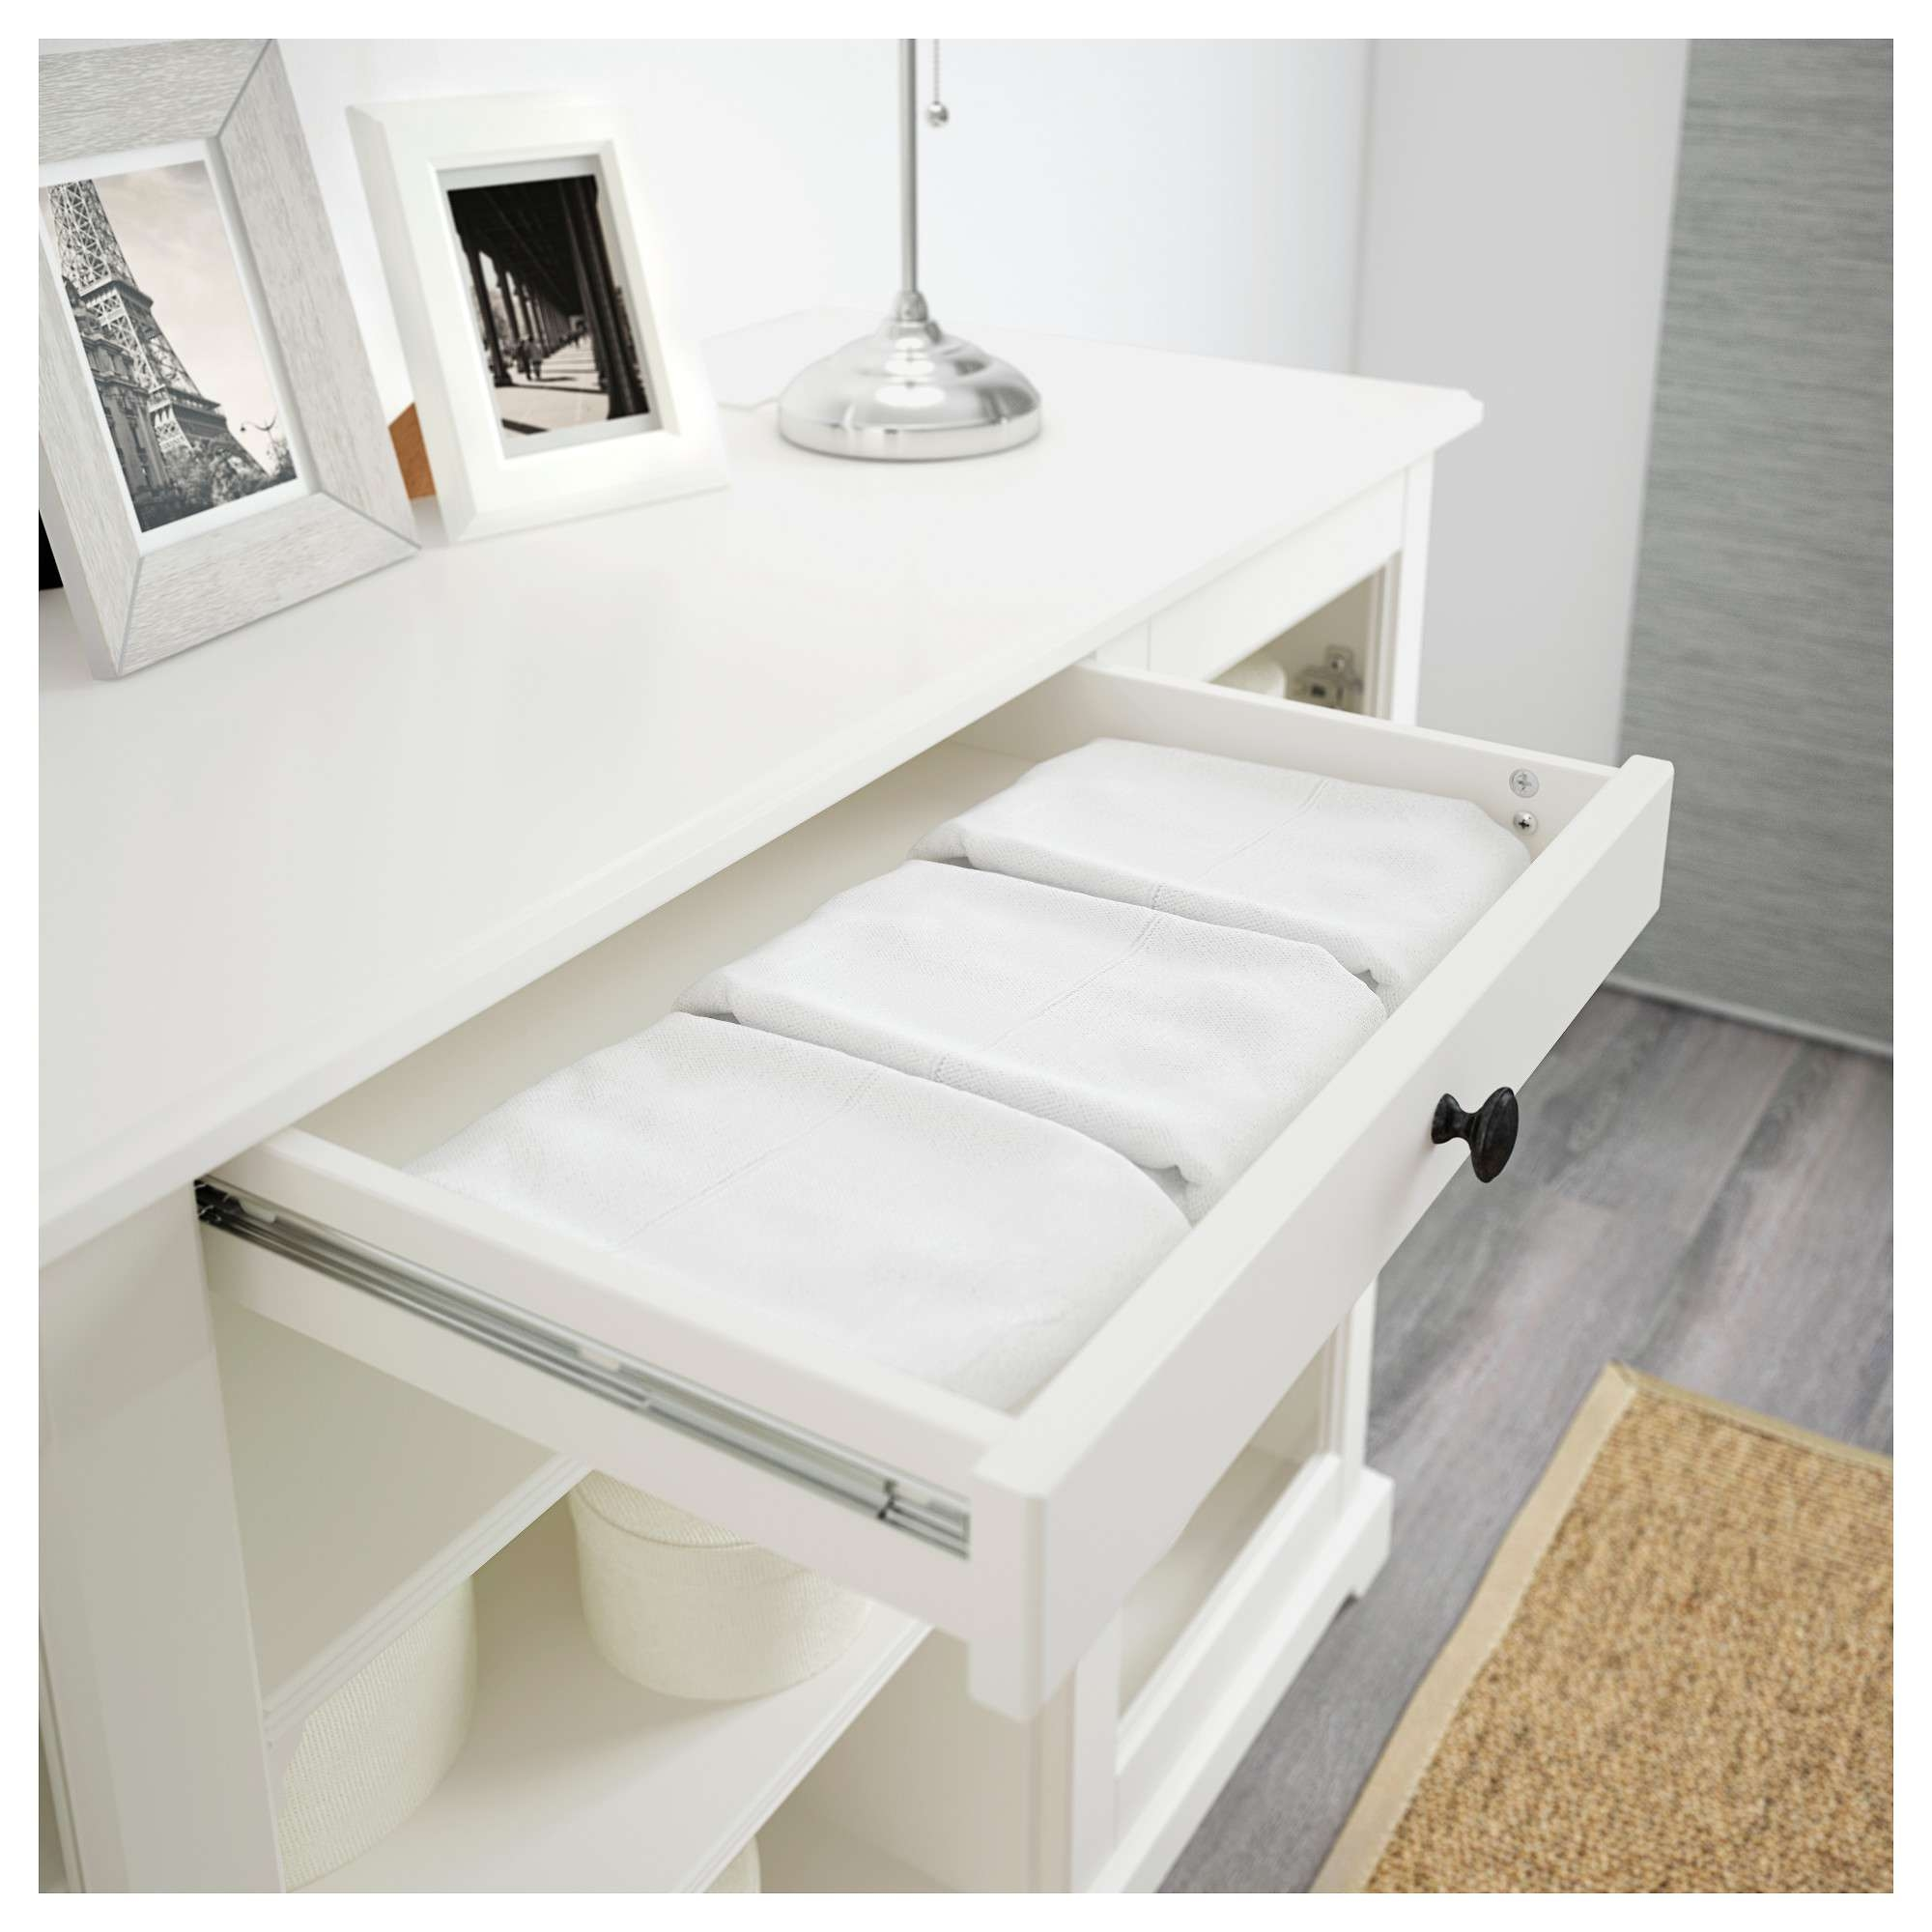 Liatorp Sideboard White 145X87 Cm – Ikea In Liatorp Sideboards (View 19 of 20)